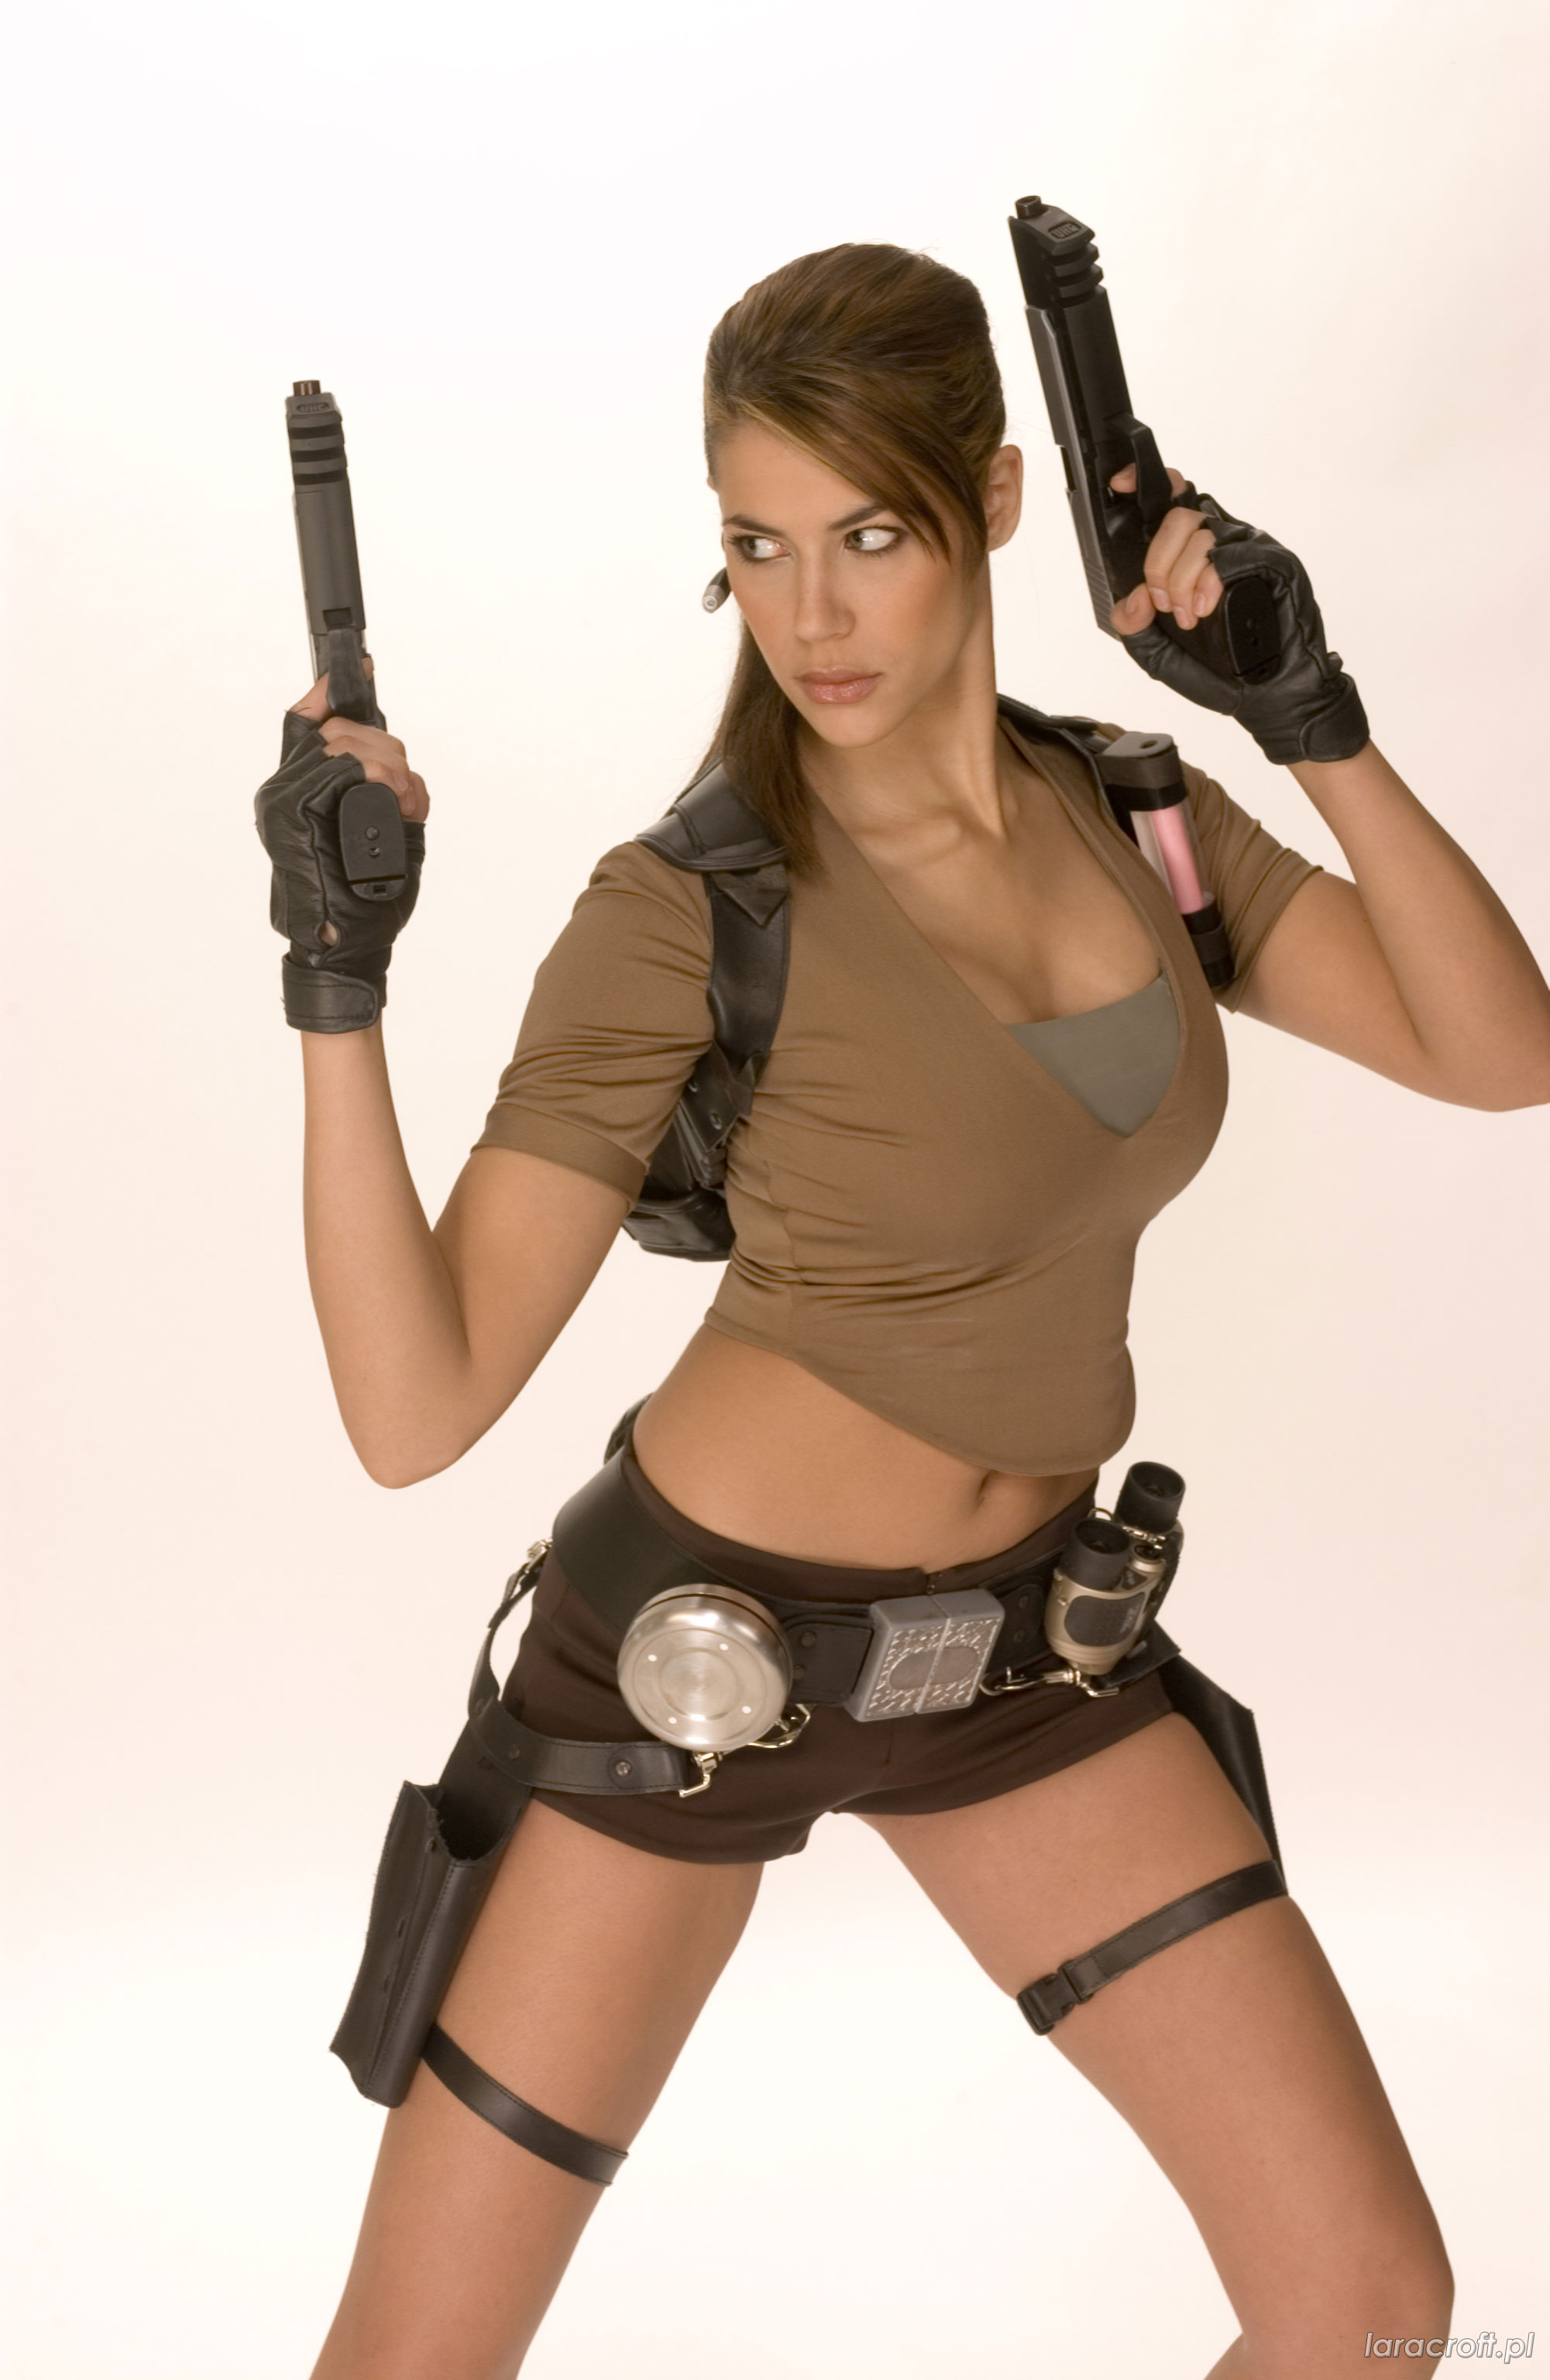 Lara croft fake sexy pic